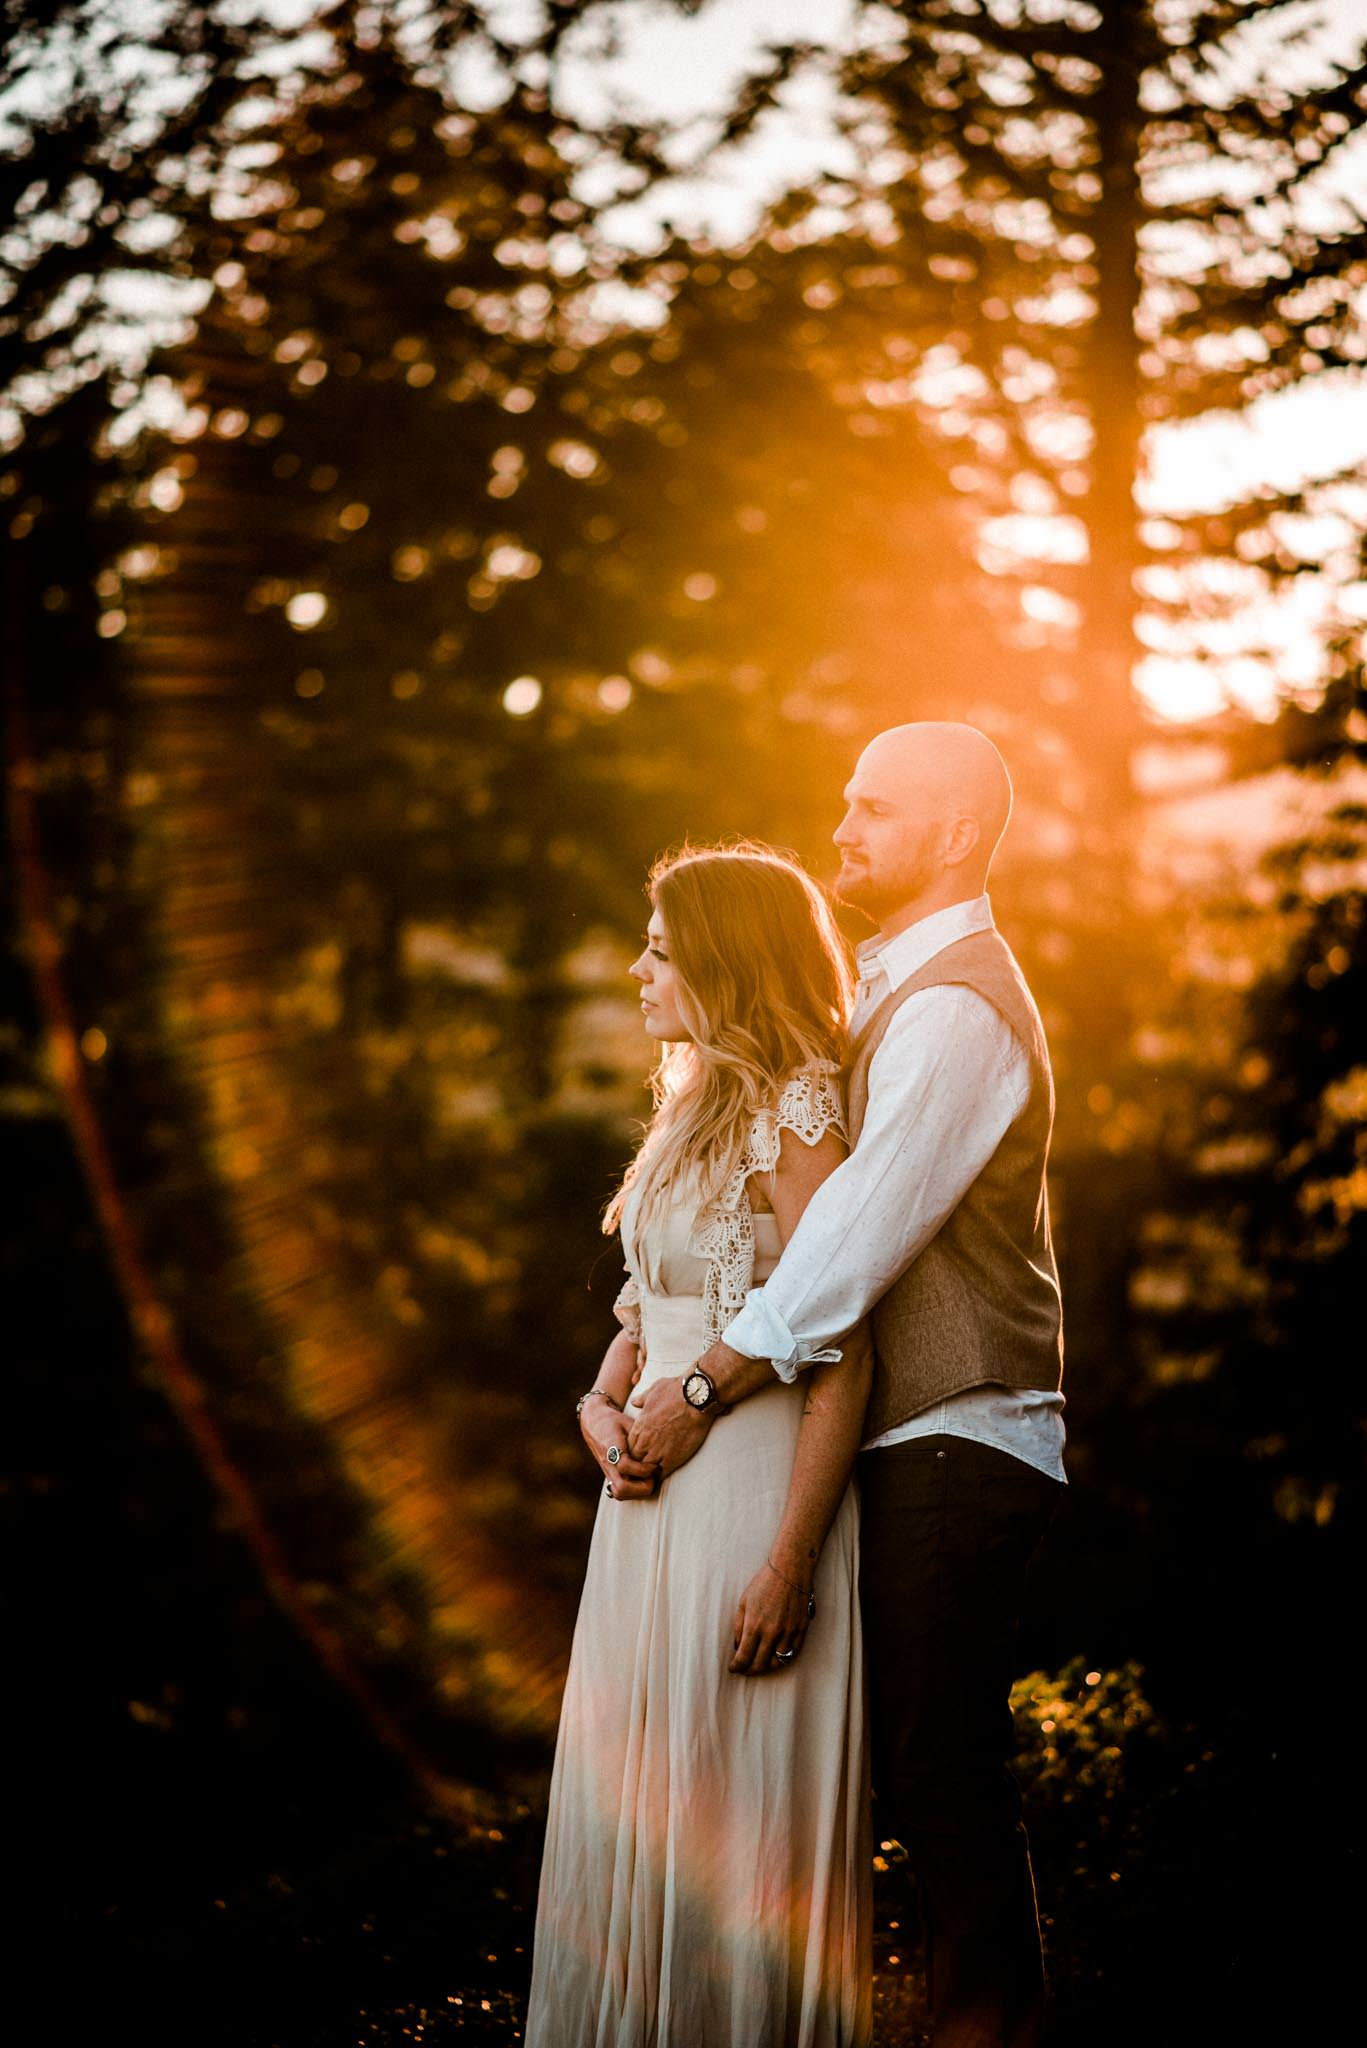 Engaged couple portraits during golden hour in the forest at Detroit Lake, Oregon